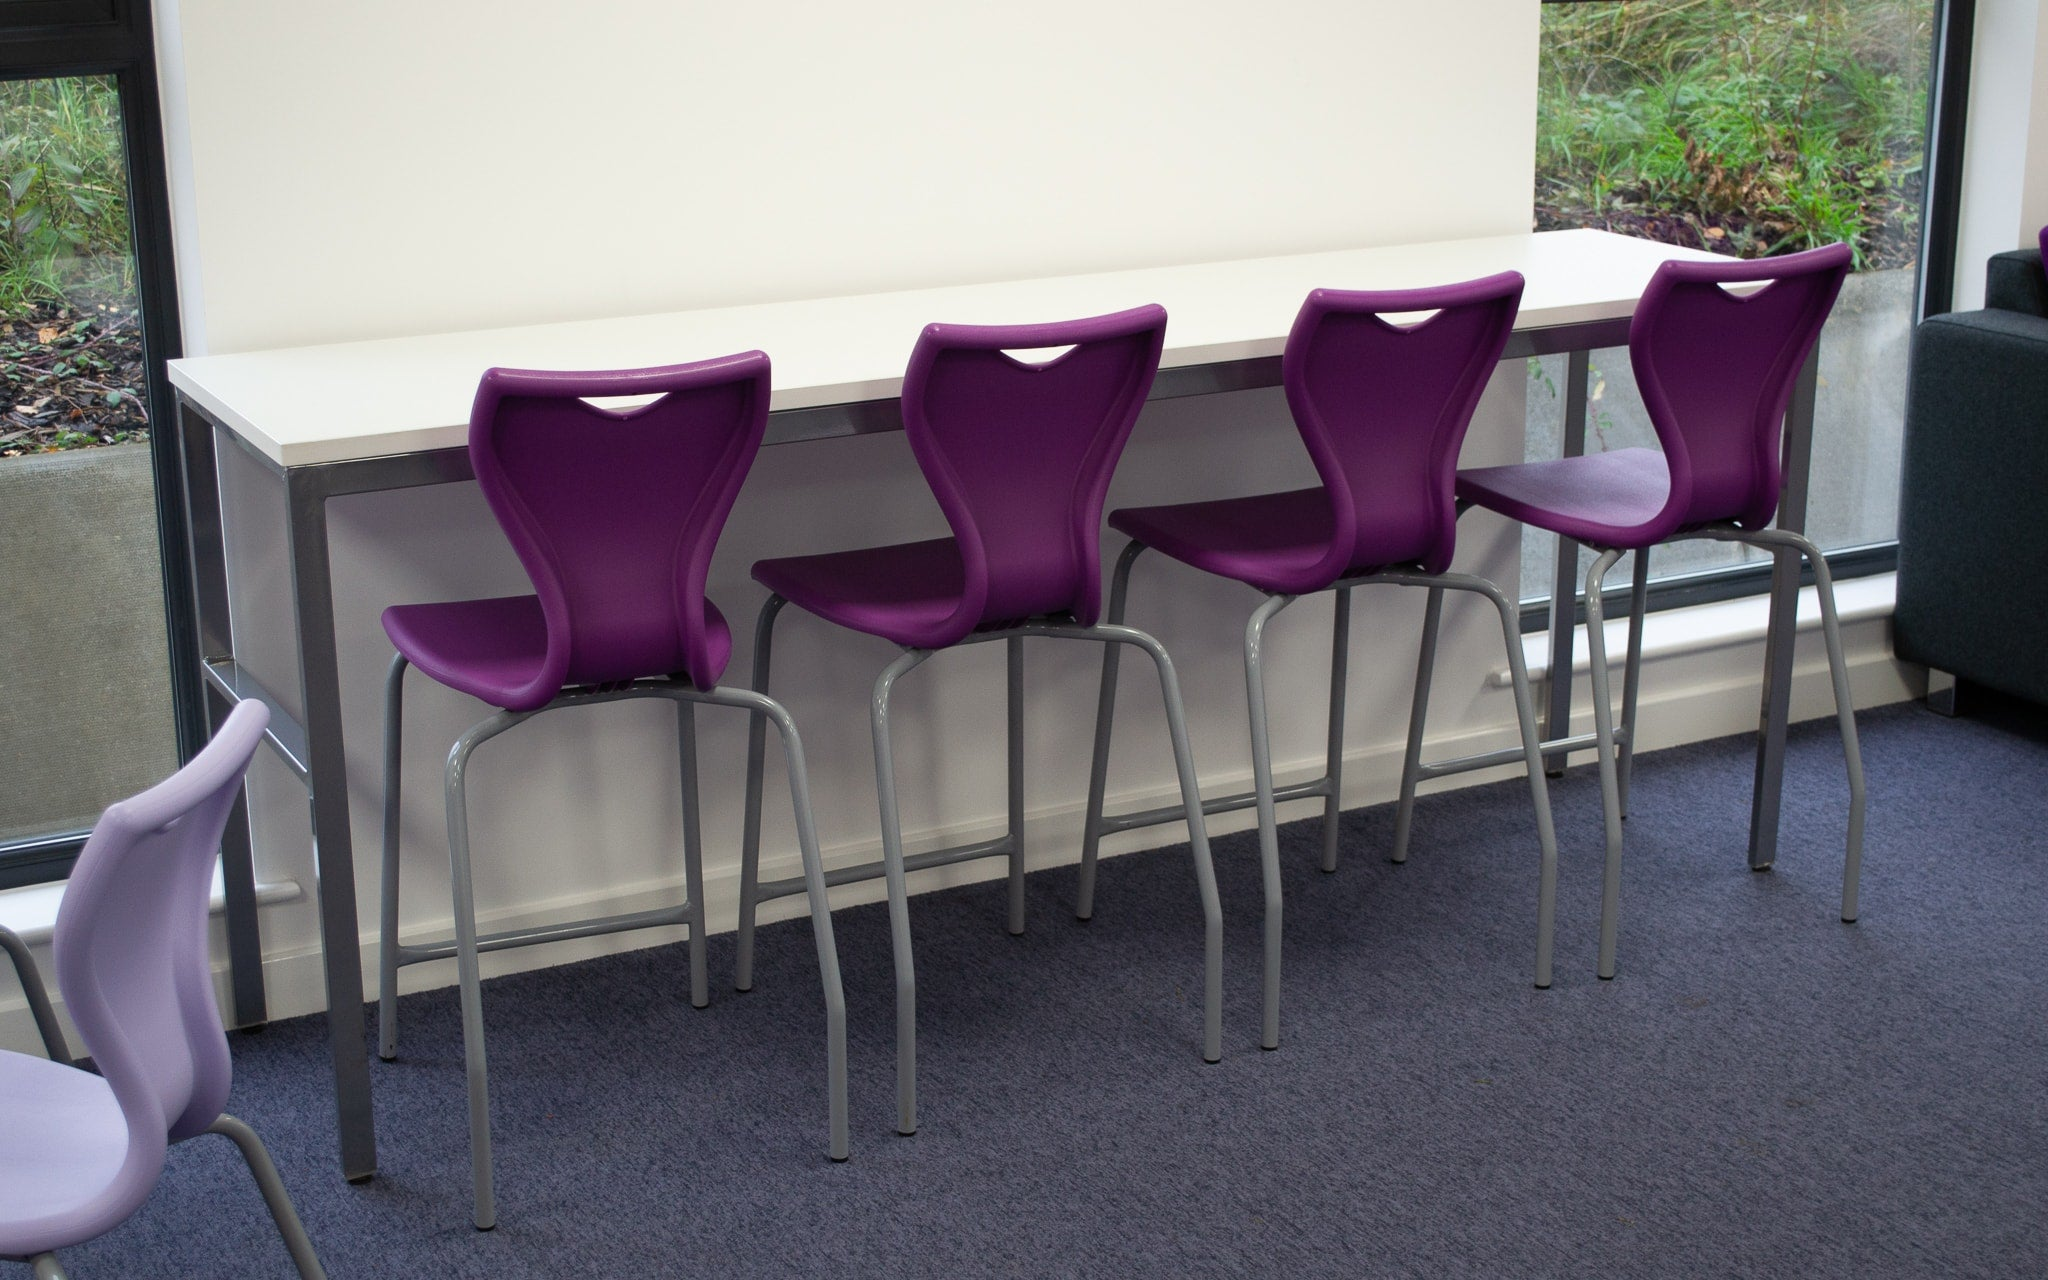 Classroom project three by Four Square Furniture